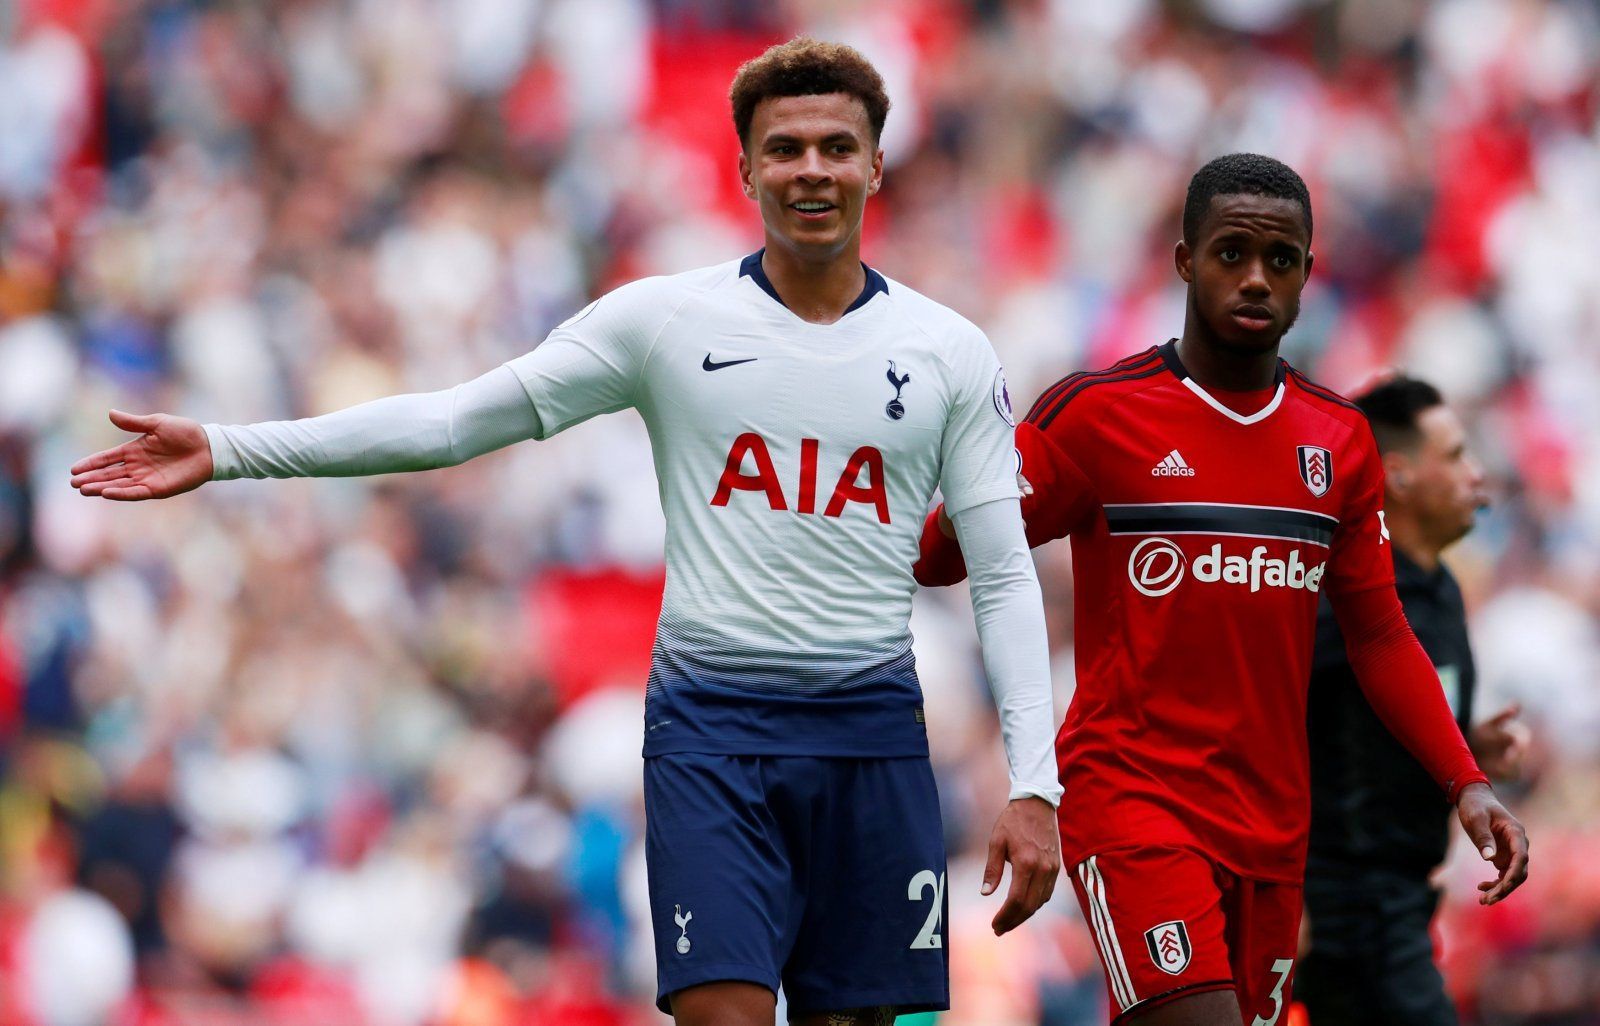 TT Introduces: The man who can improve the mood at Tottenham, Dele Alli